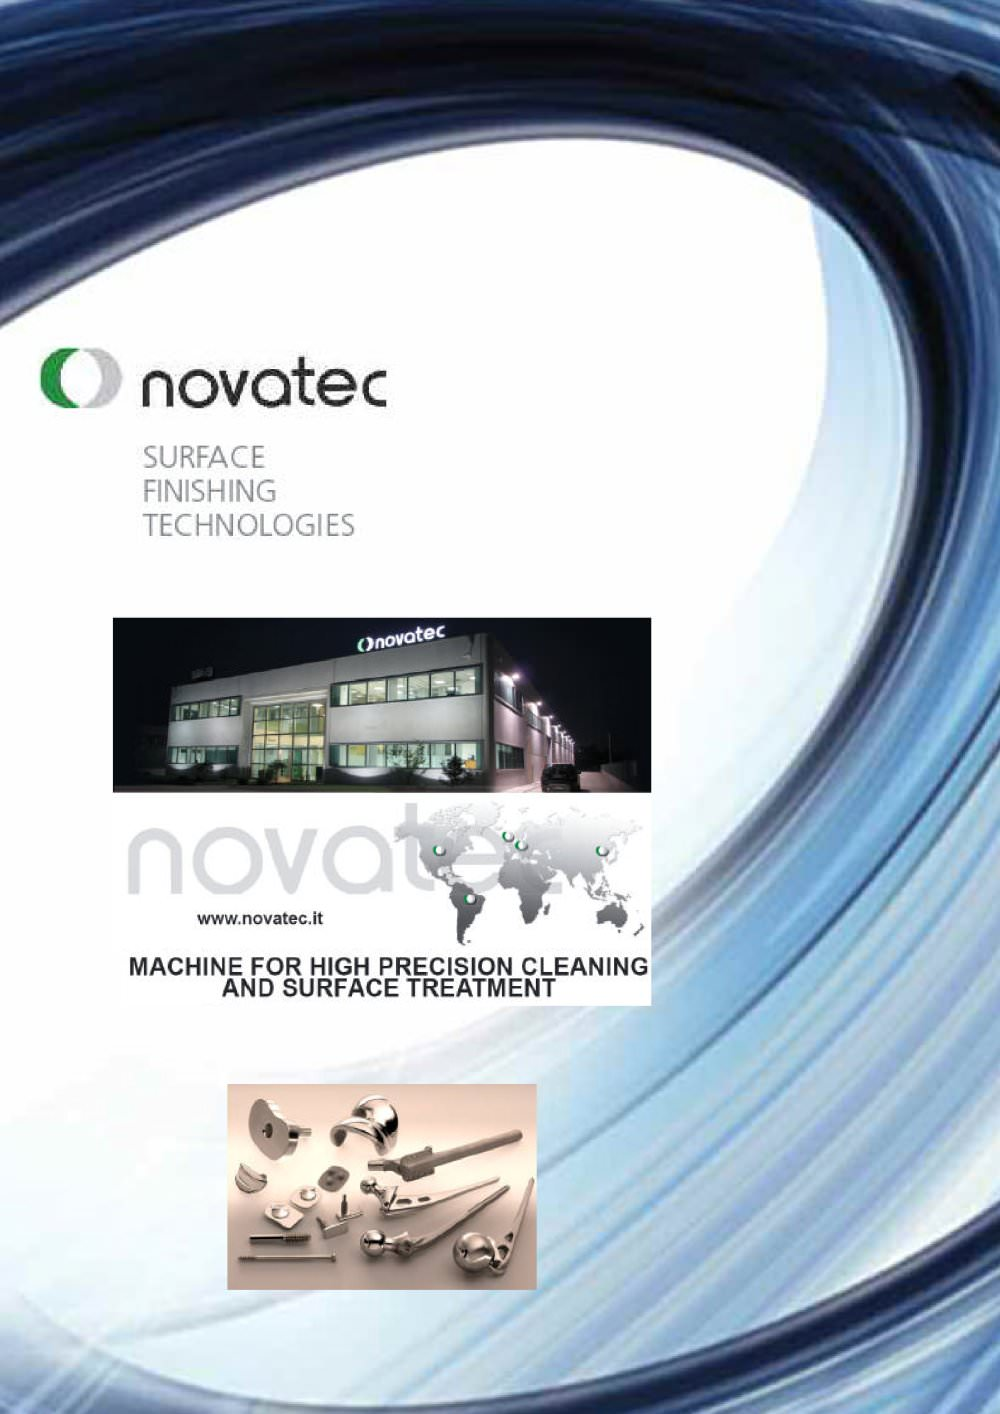 medical cleaning lines brochure novatec srl surface finishing medical cleaning lines brochure 1 9 pages